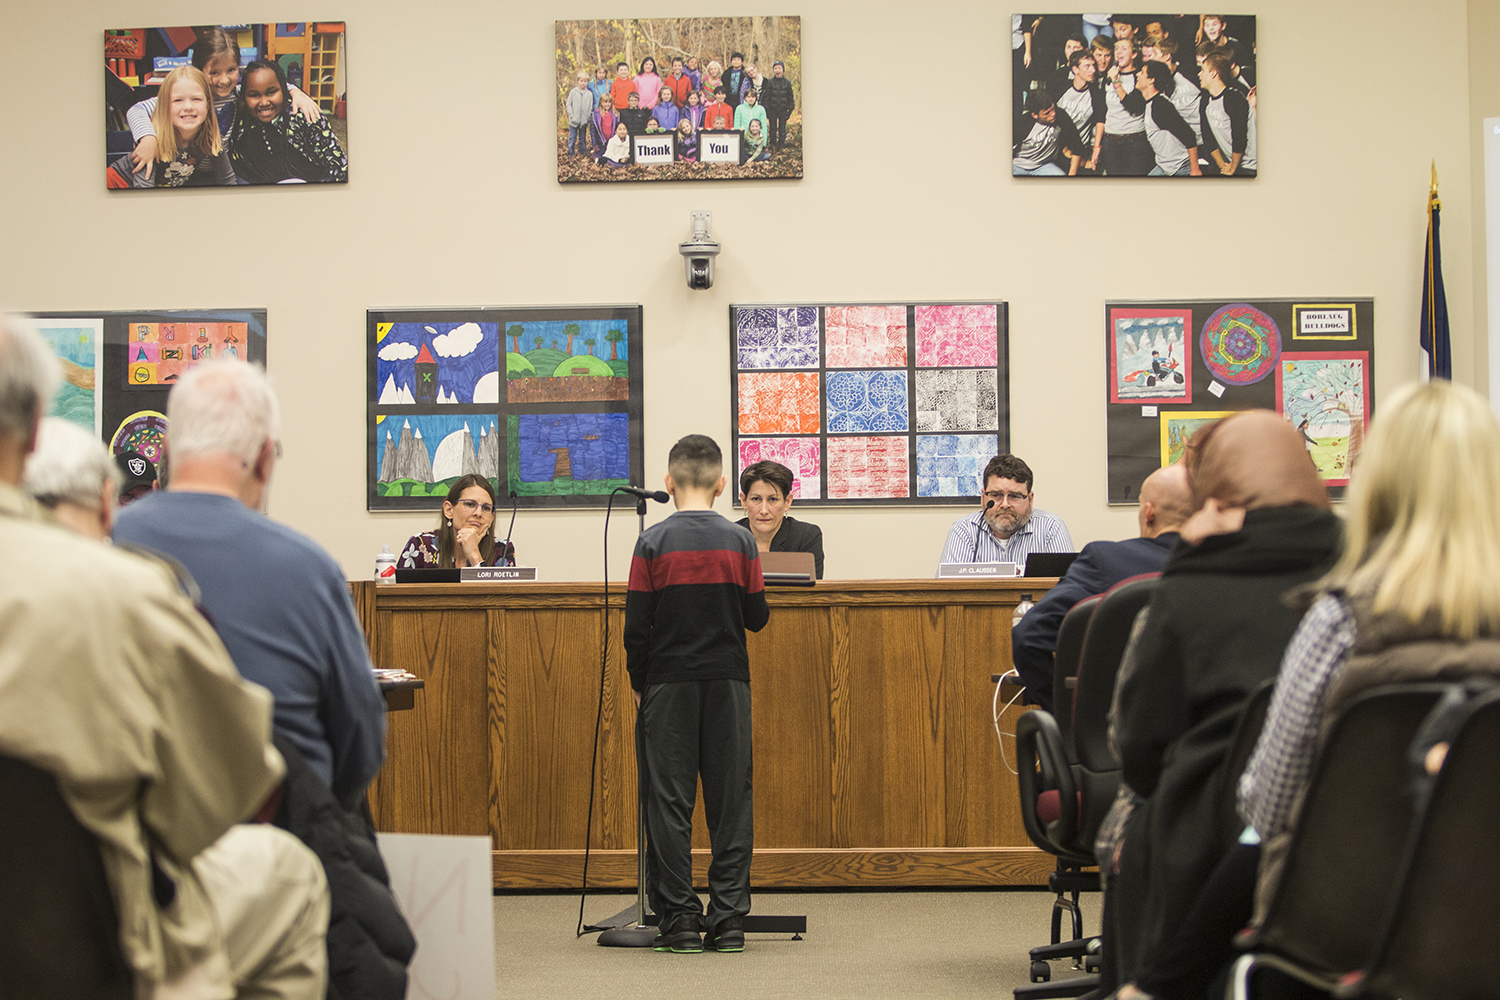 A young attendee speaks to the school board during an Iowa City school board meeting at the Professional Development Center on March 27, 2018. (Katina Zentz/The Daily Iowan)